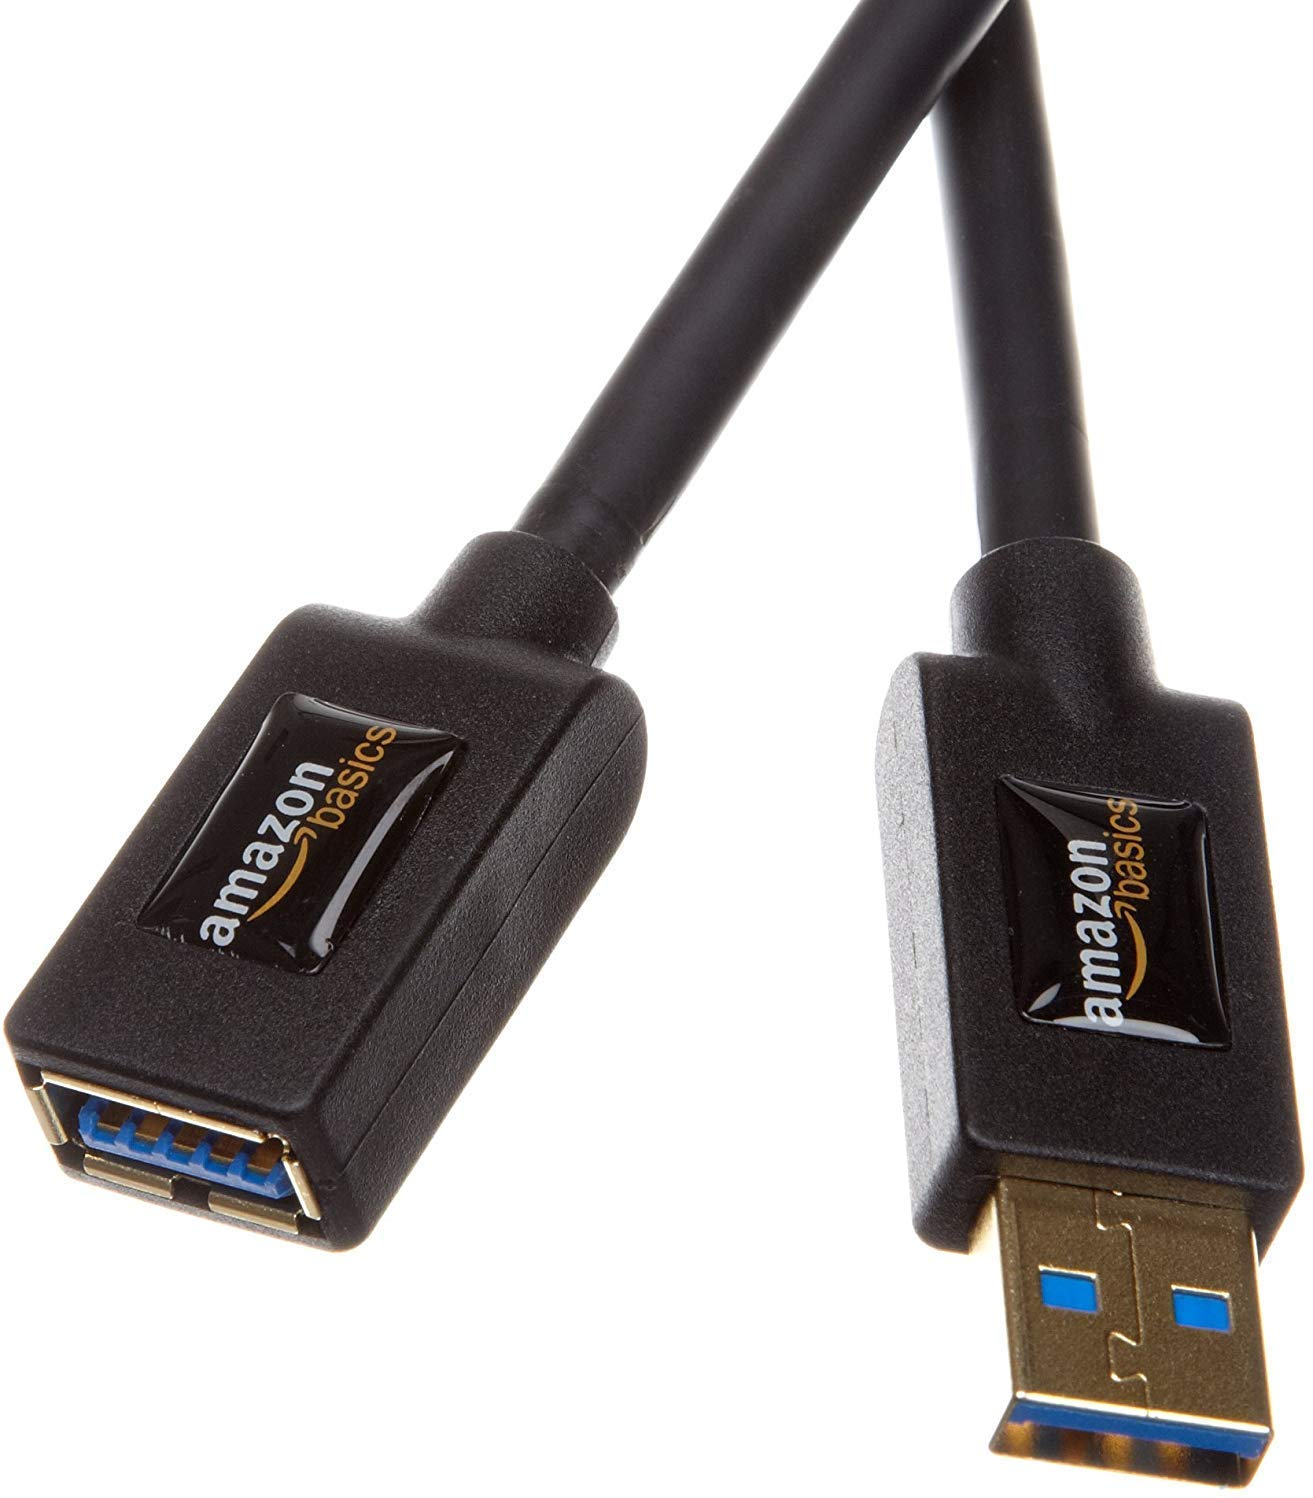 Amazon Basics USB 3.0 Extension Cable - A-Male a A-Female Ad